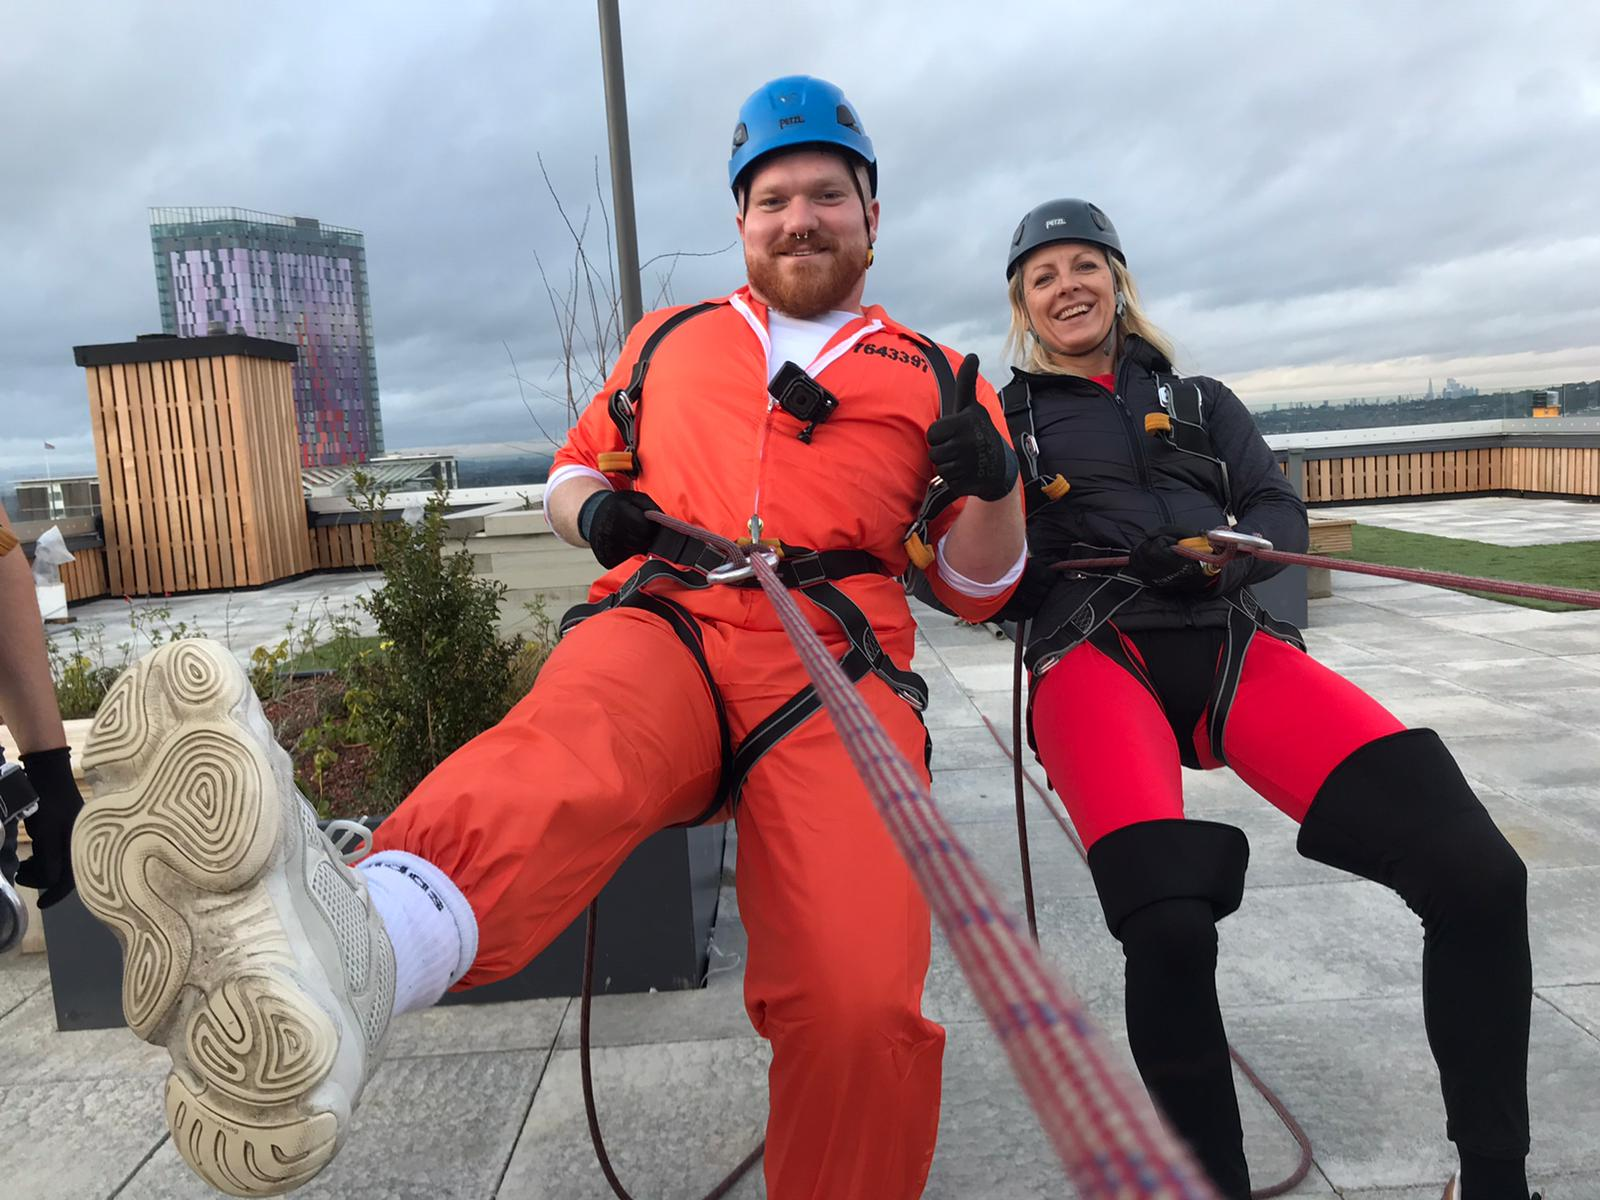 Charity Abseil Event in London